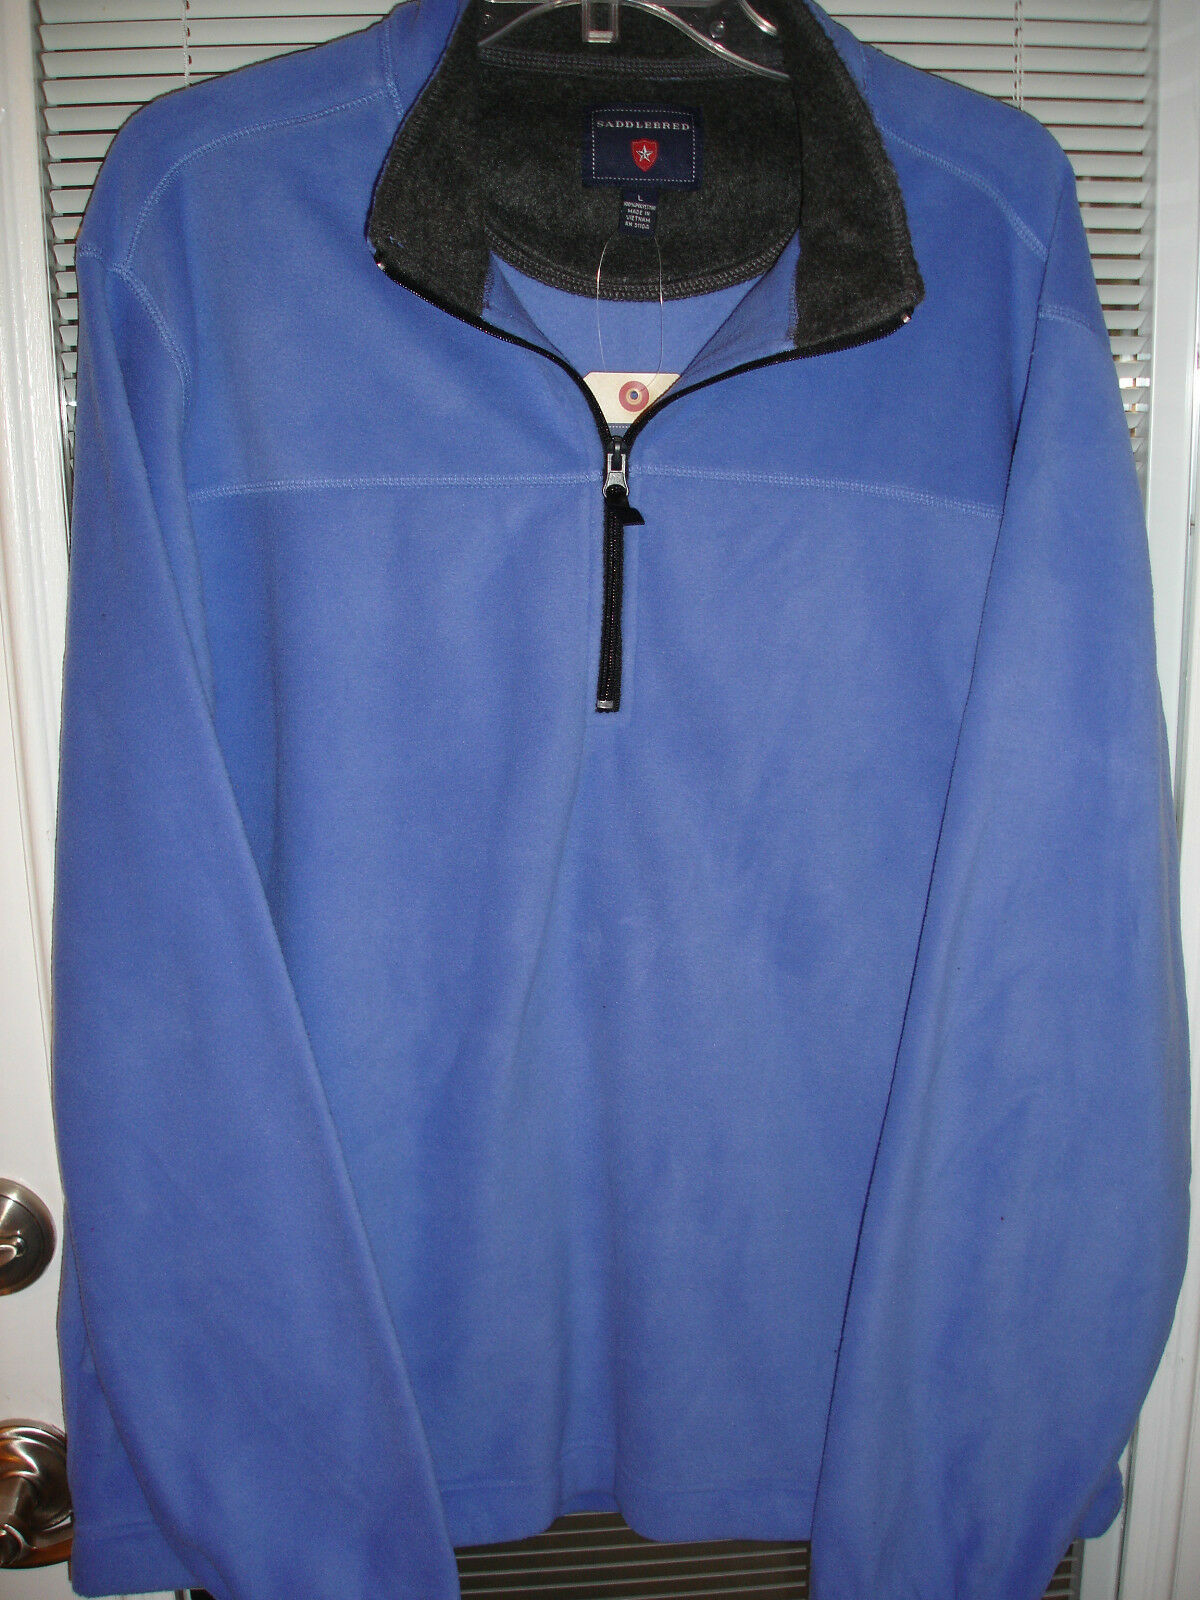 Saddlebred 1/3 ZIPPER Fleece Solid Blue Pullover Mens Sz Large ...